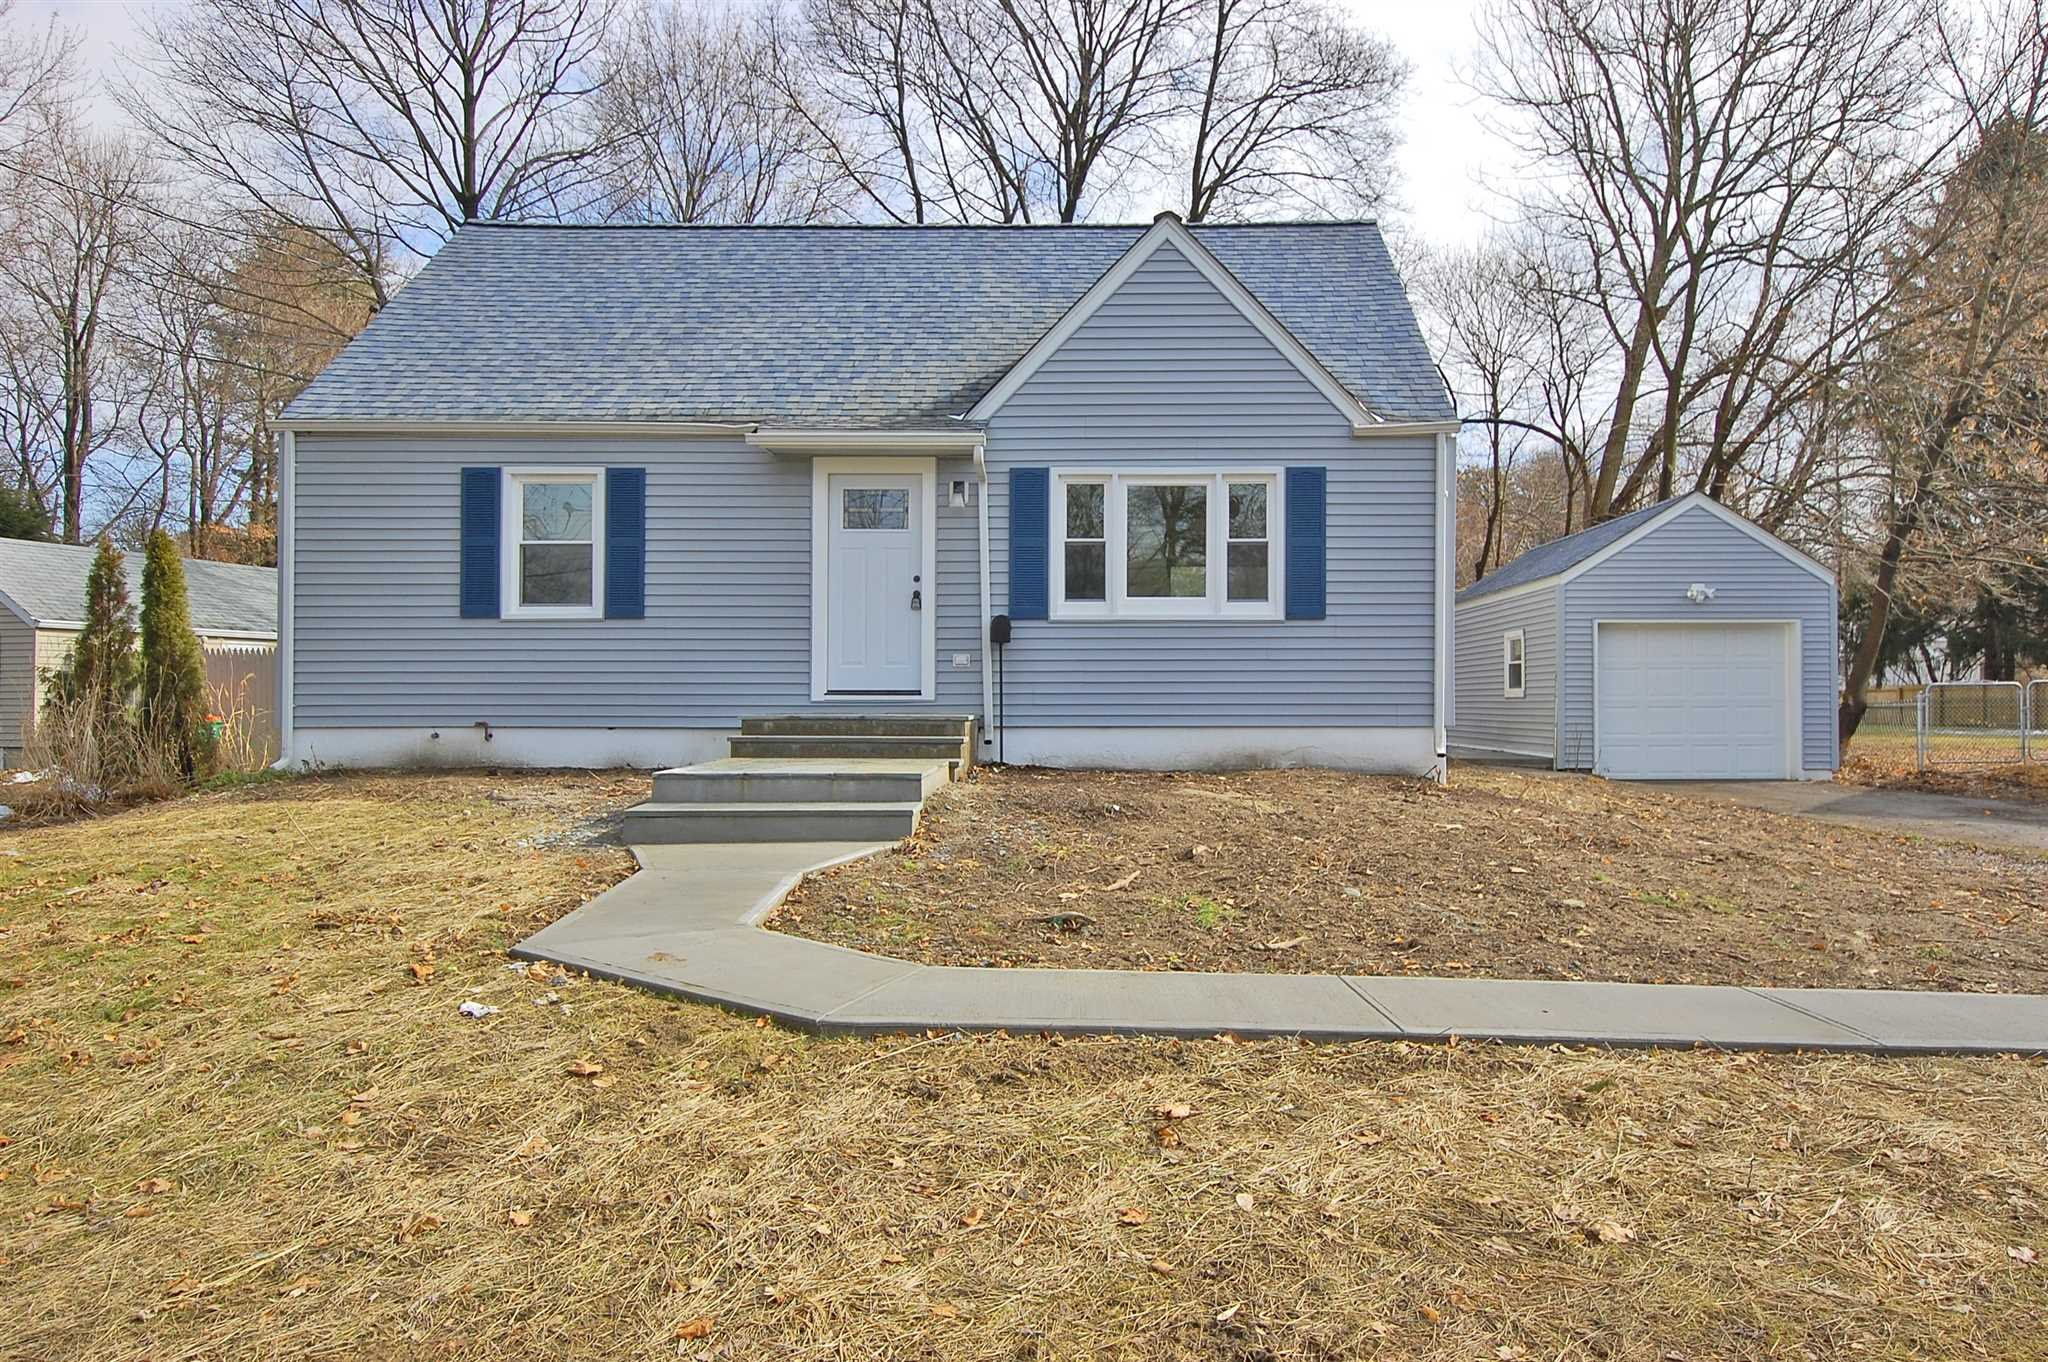 10 CATHY RD Poughkeepsie Twp, NY 12603 - MLS #: 368549